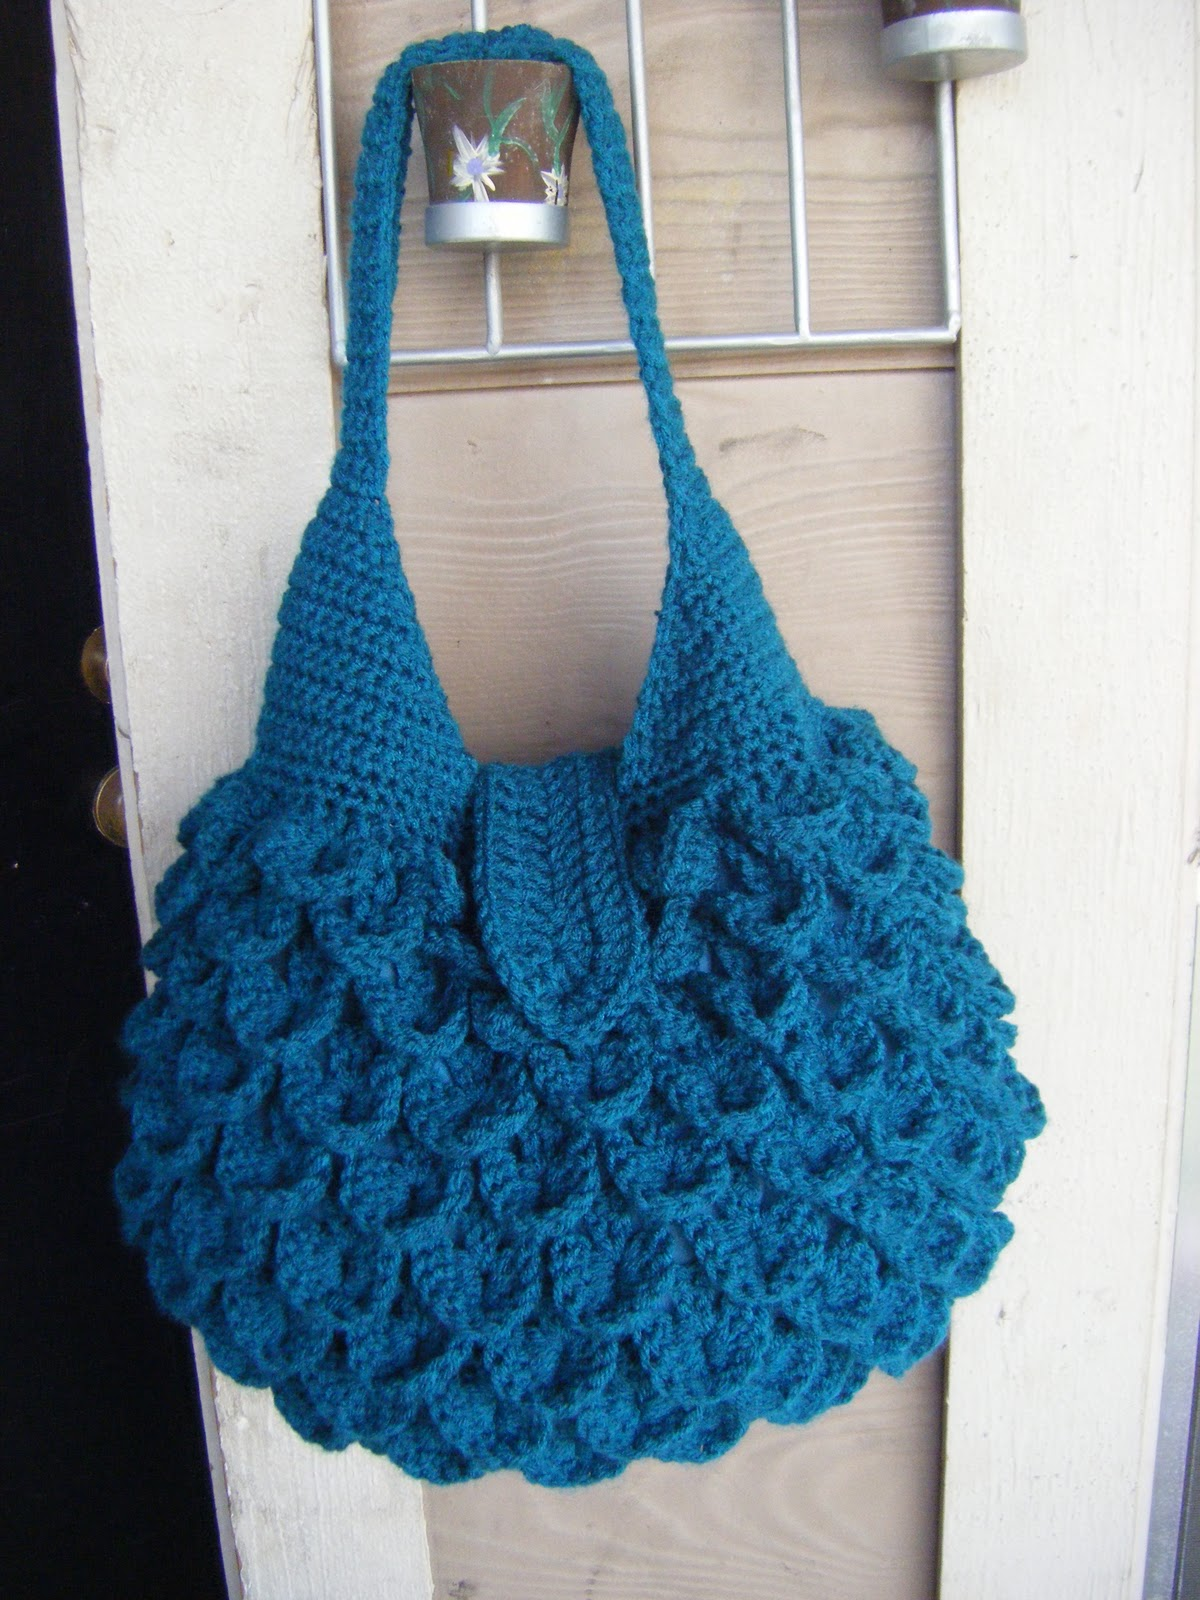 Crochet Bag Pattern Easy : Best Patterns: Crocodile Crochet Bag PATTERN